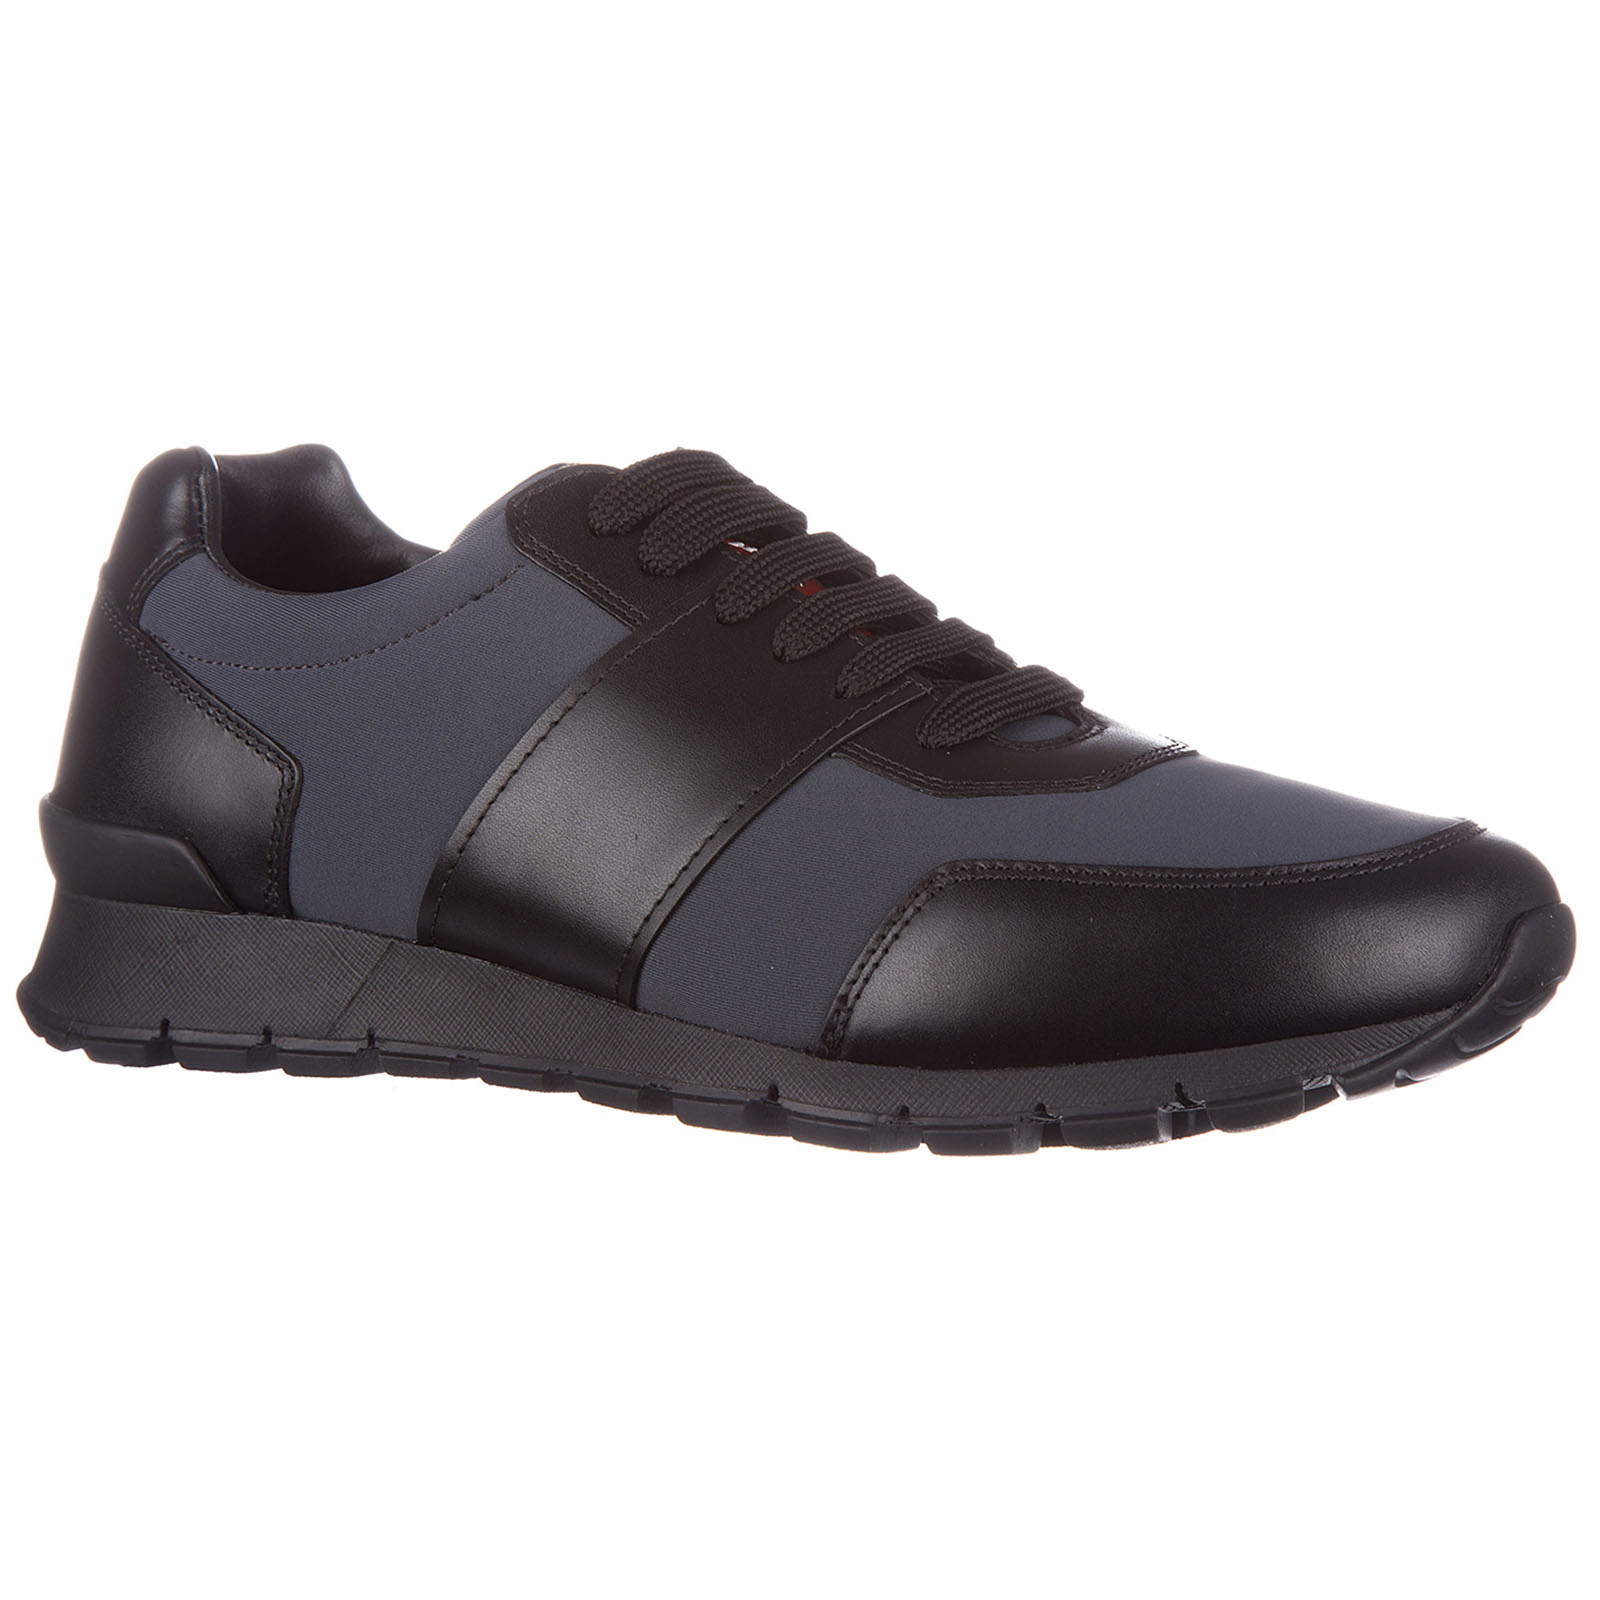 Men's shoes leather trainers sneakers golf